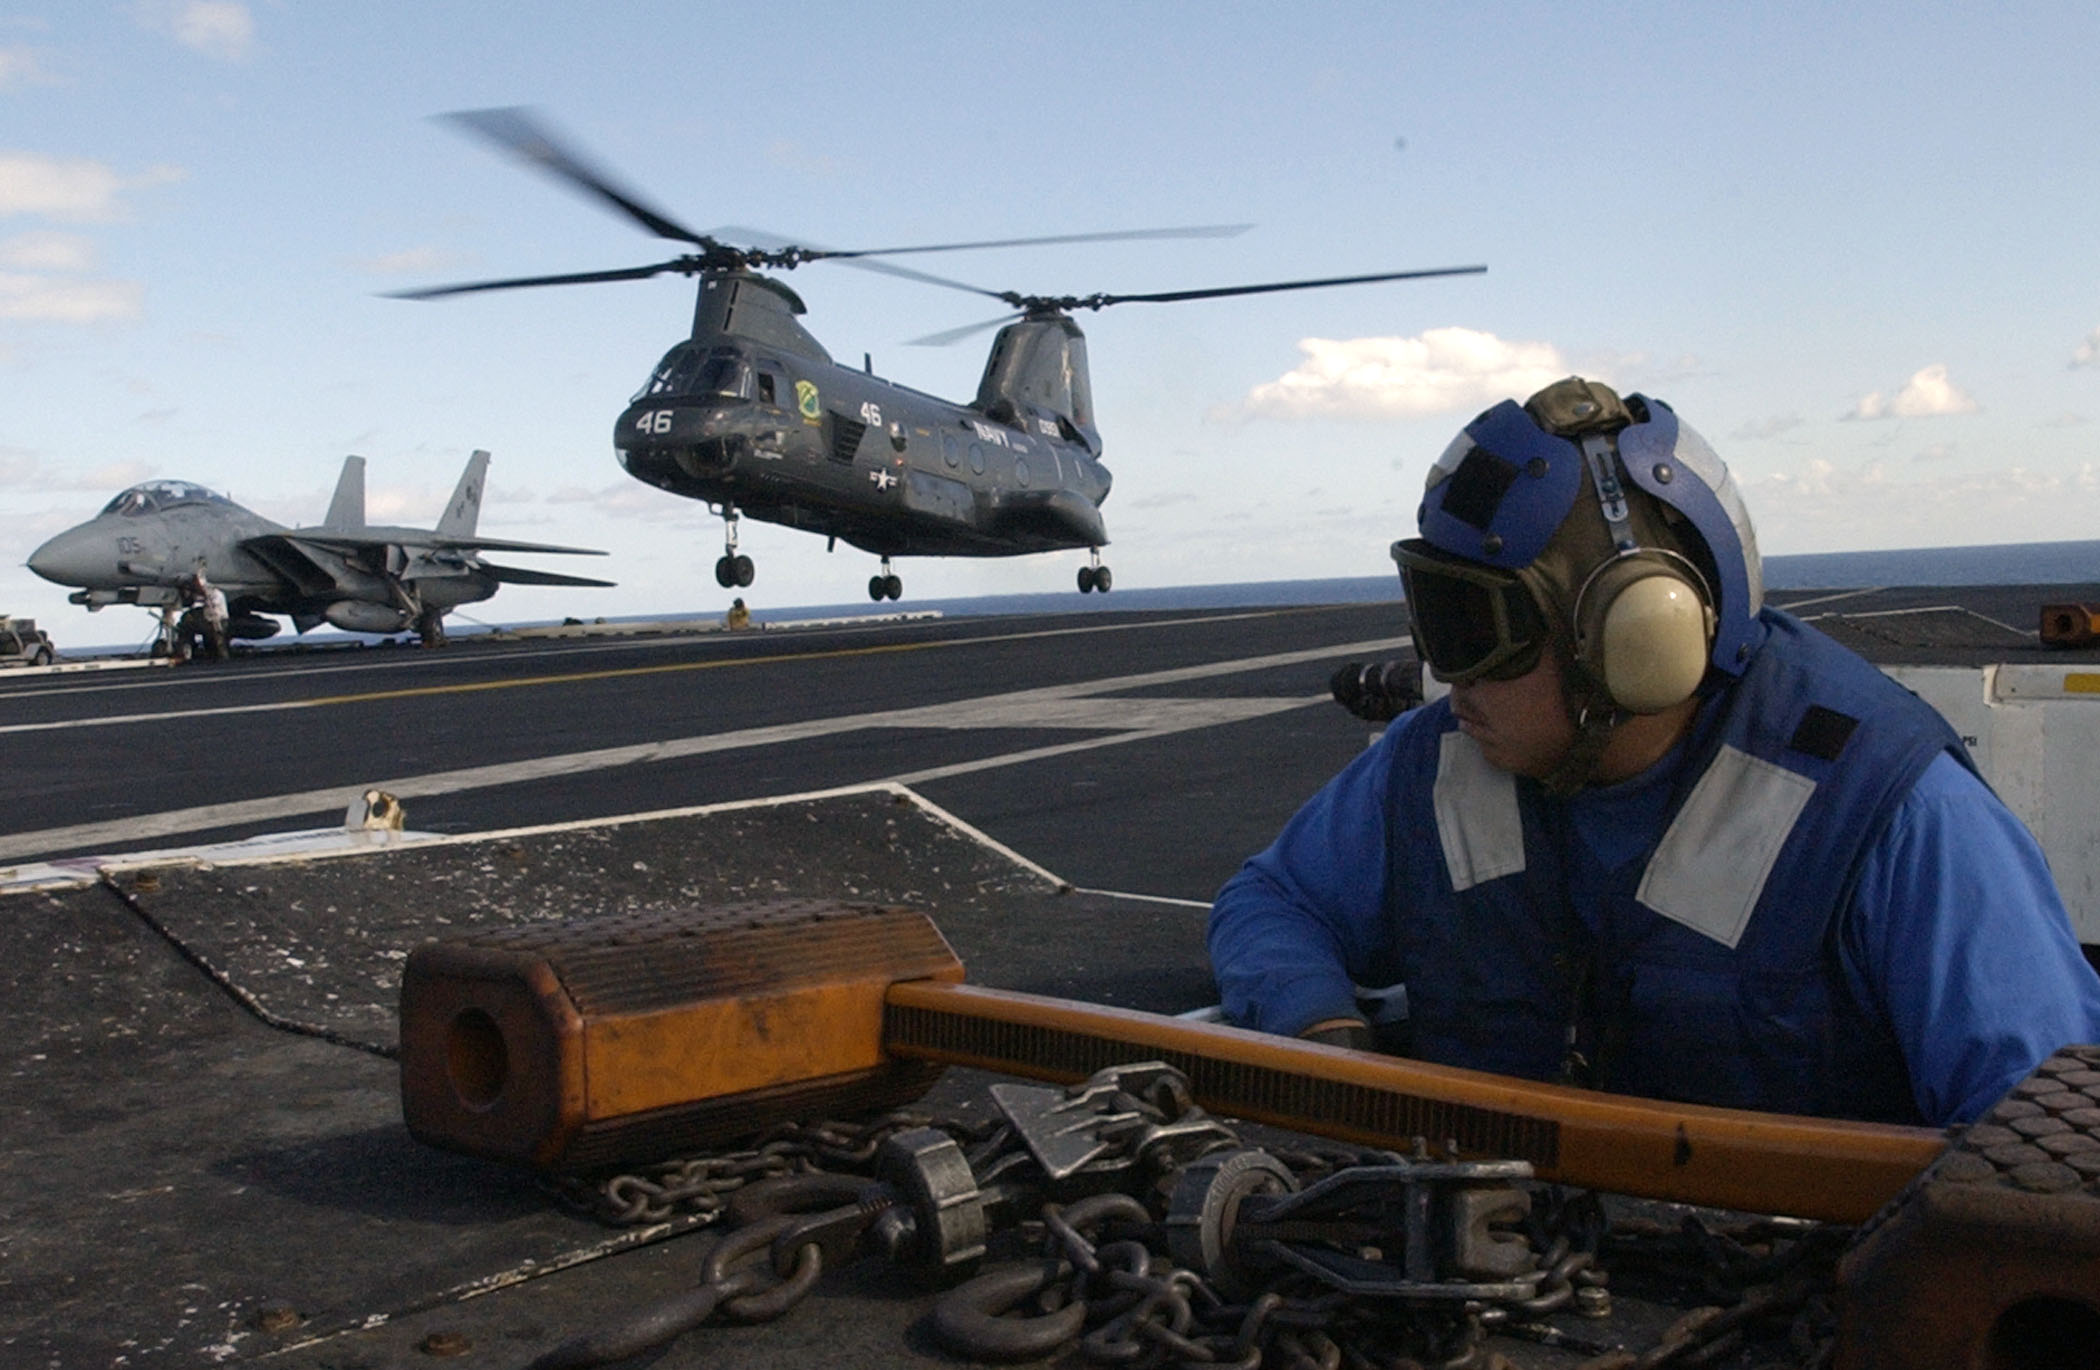 US Navy 031103-N-6713R-064 Aviation Boatswain's Mate Airman Thomas Brehm observes the landing of a CH-46 Sea Knight